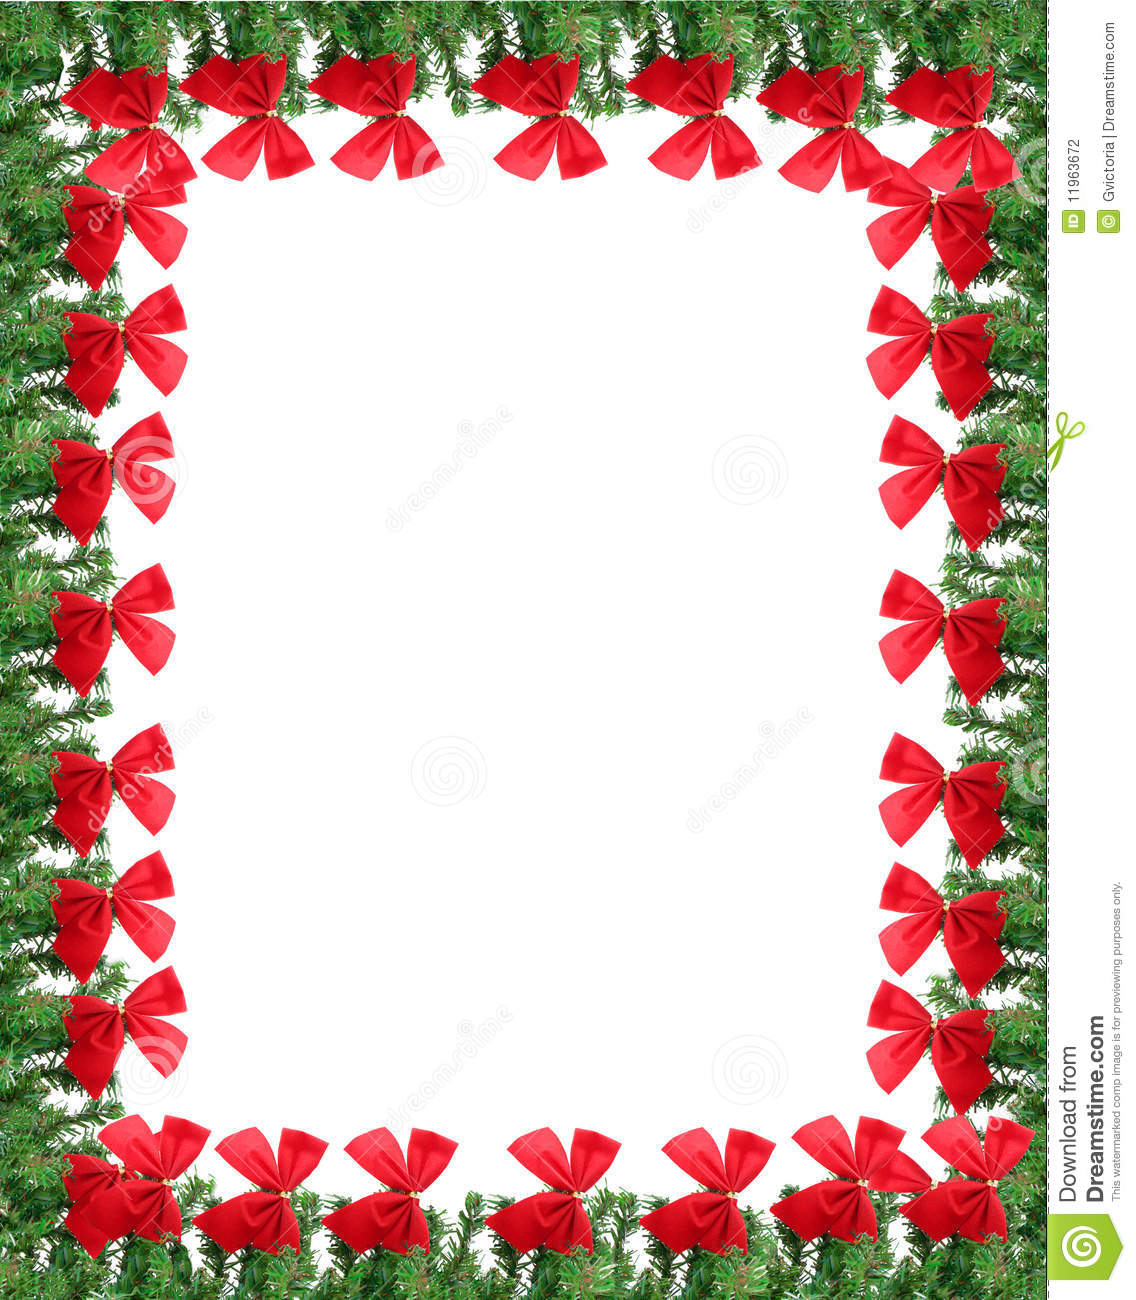 Christmas Greeting Card Border Stock Photo Image Of Bows Festive